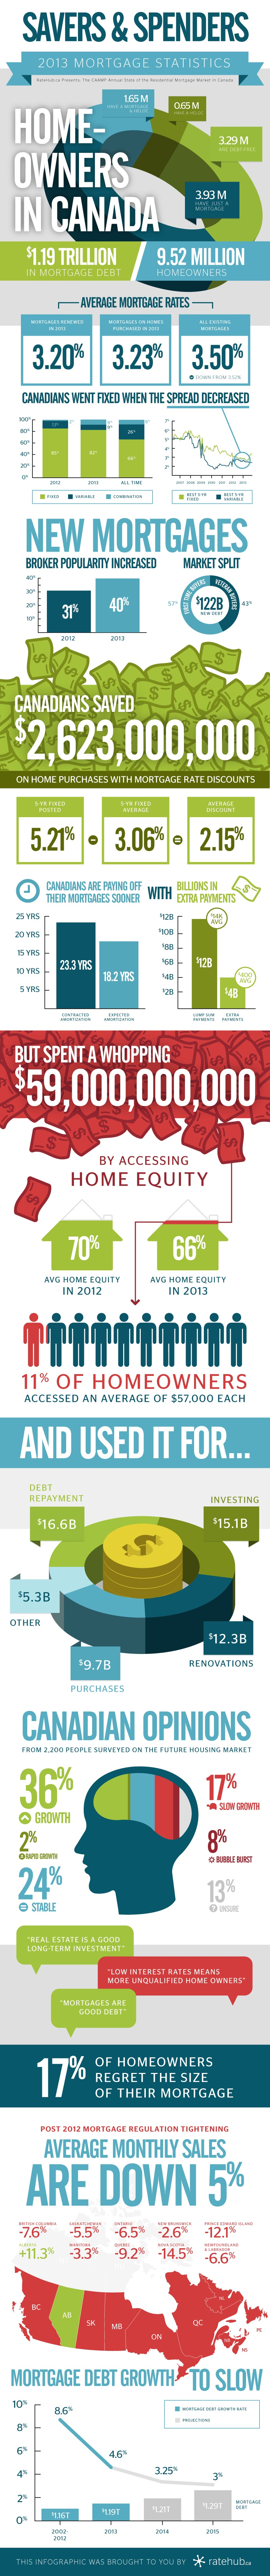 caamp-fall-2013-mortgage-infographic